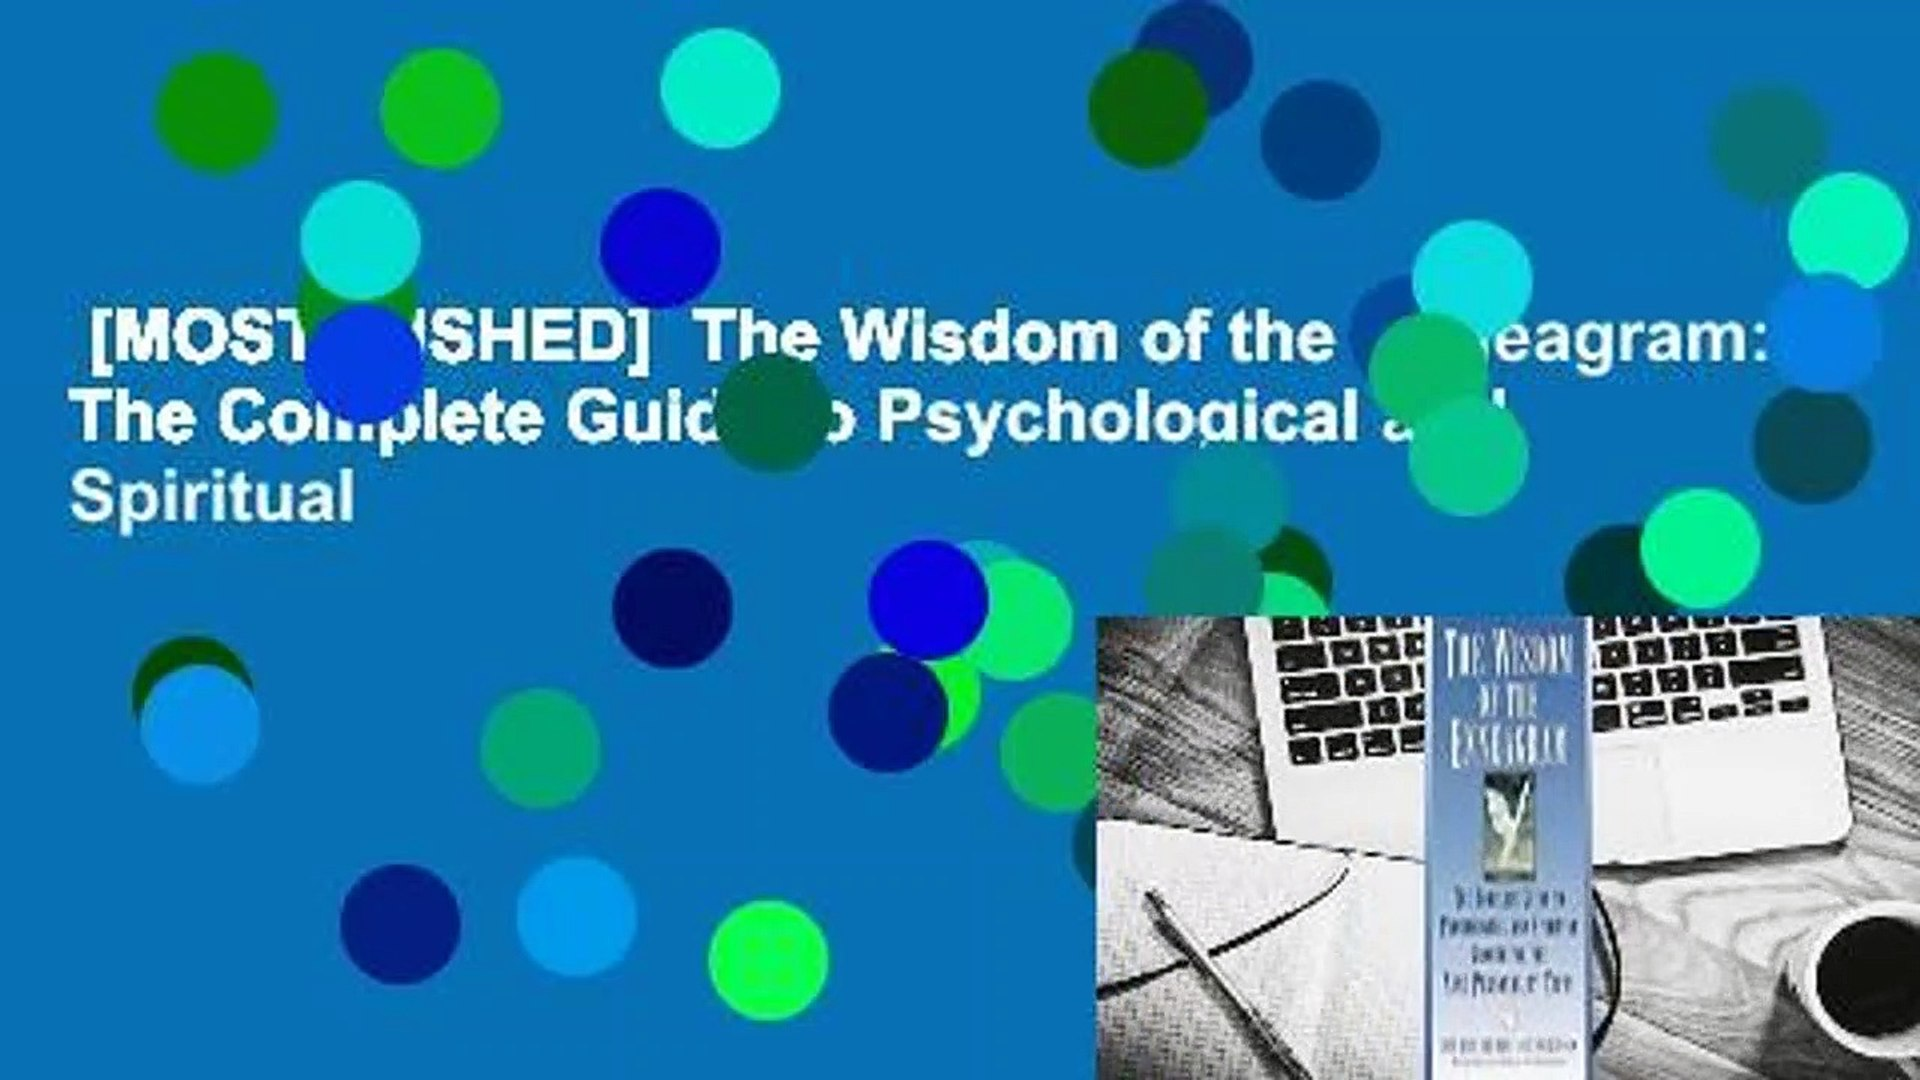 [MOST WISHED]  The Wisdom of the Enneagram: The Complete Guide to Psychological and Spiritual